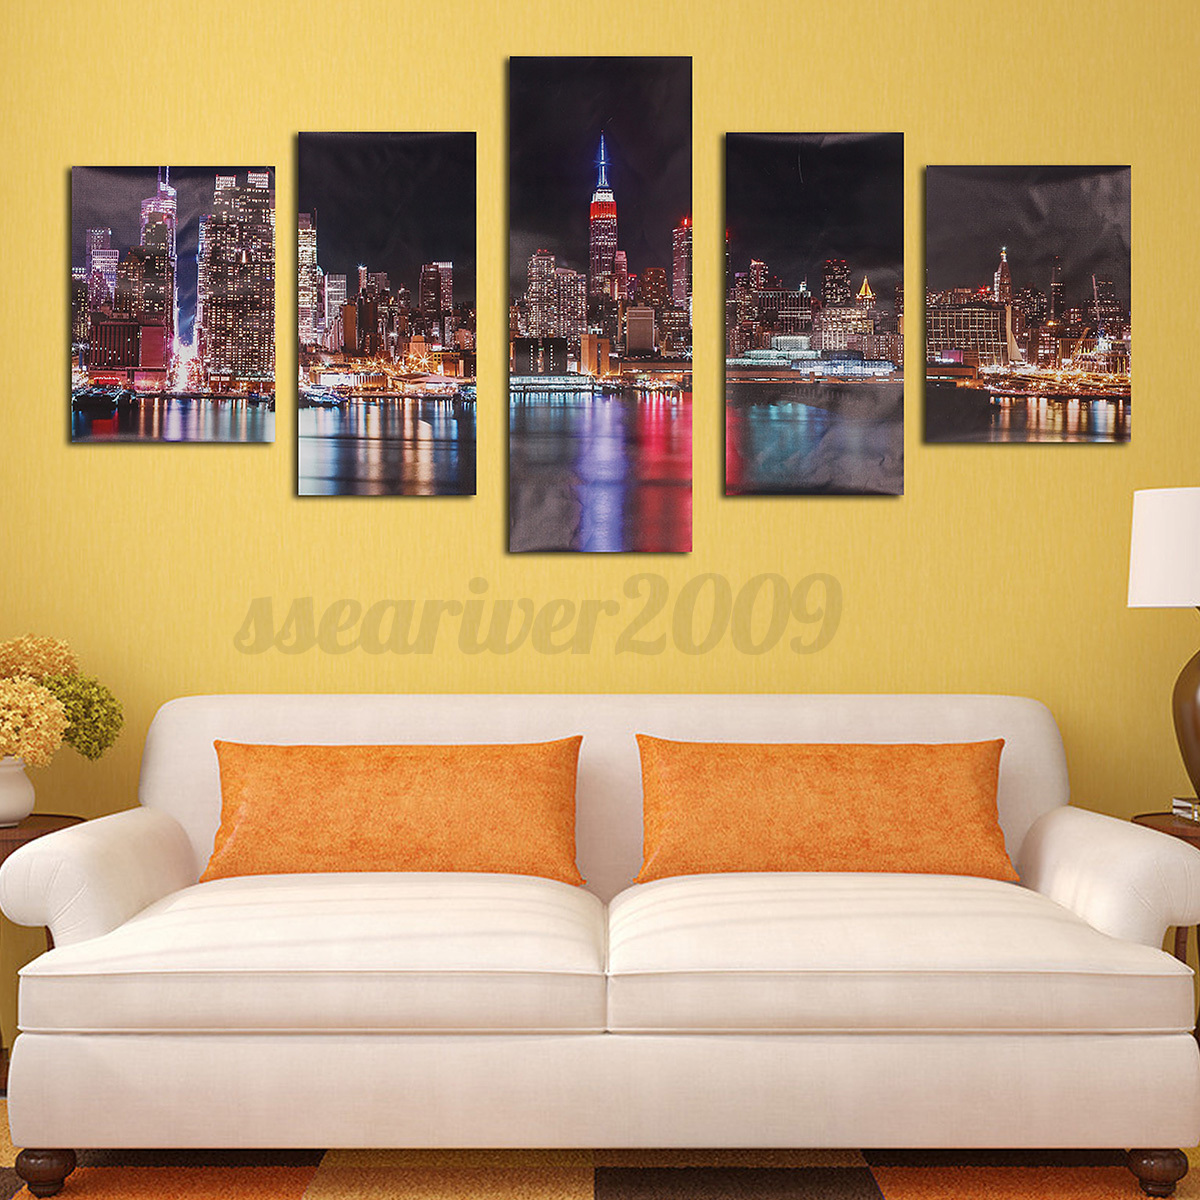 5PCS Modern Abstract Canvas Painting Print Picture Wall Art Home ...